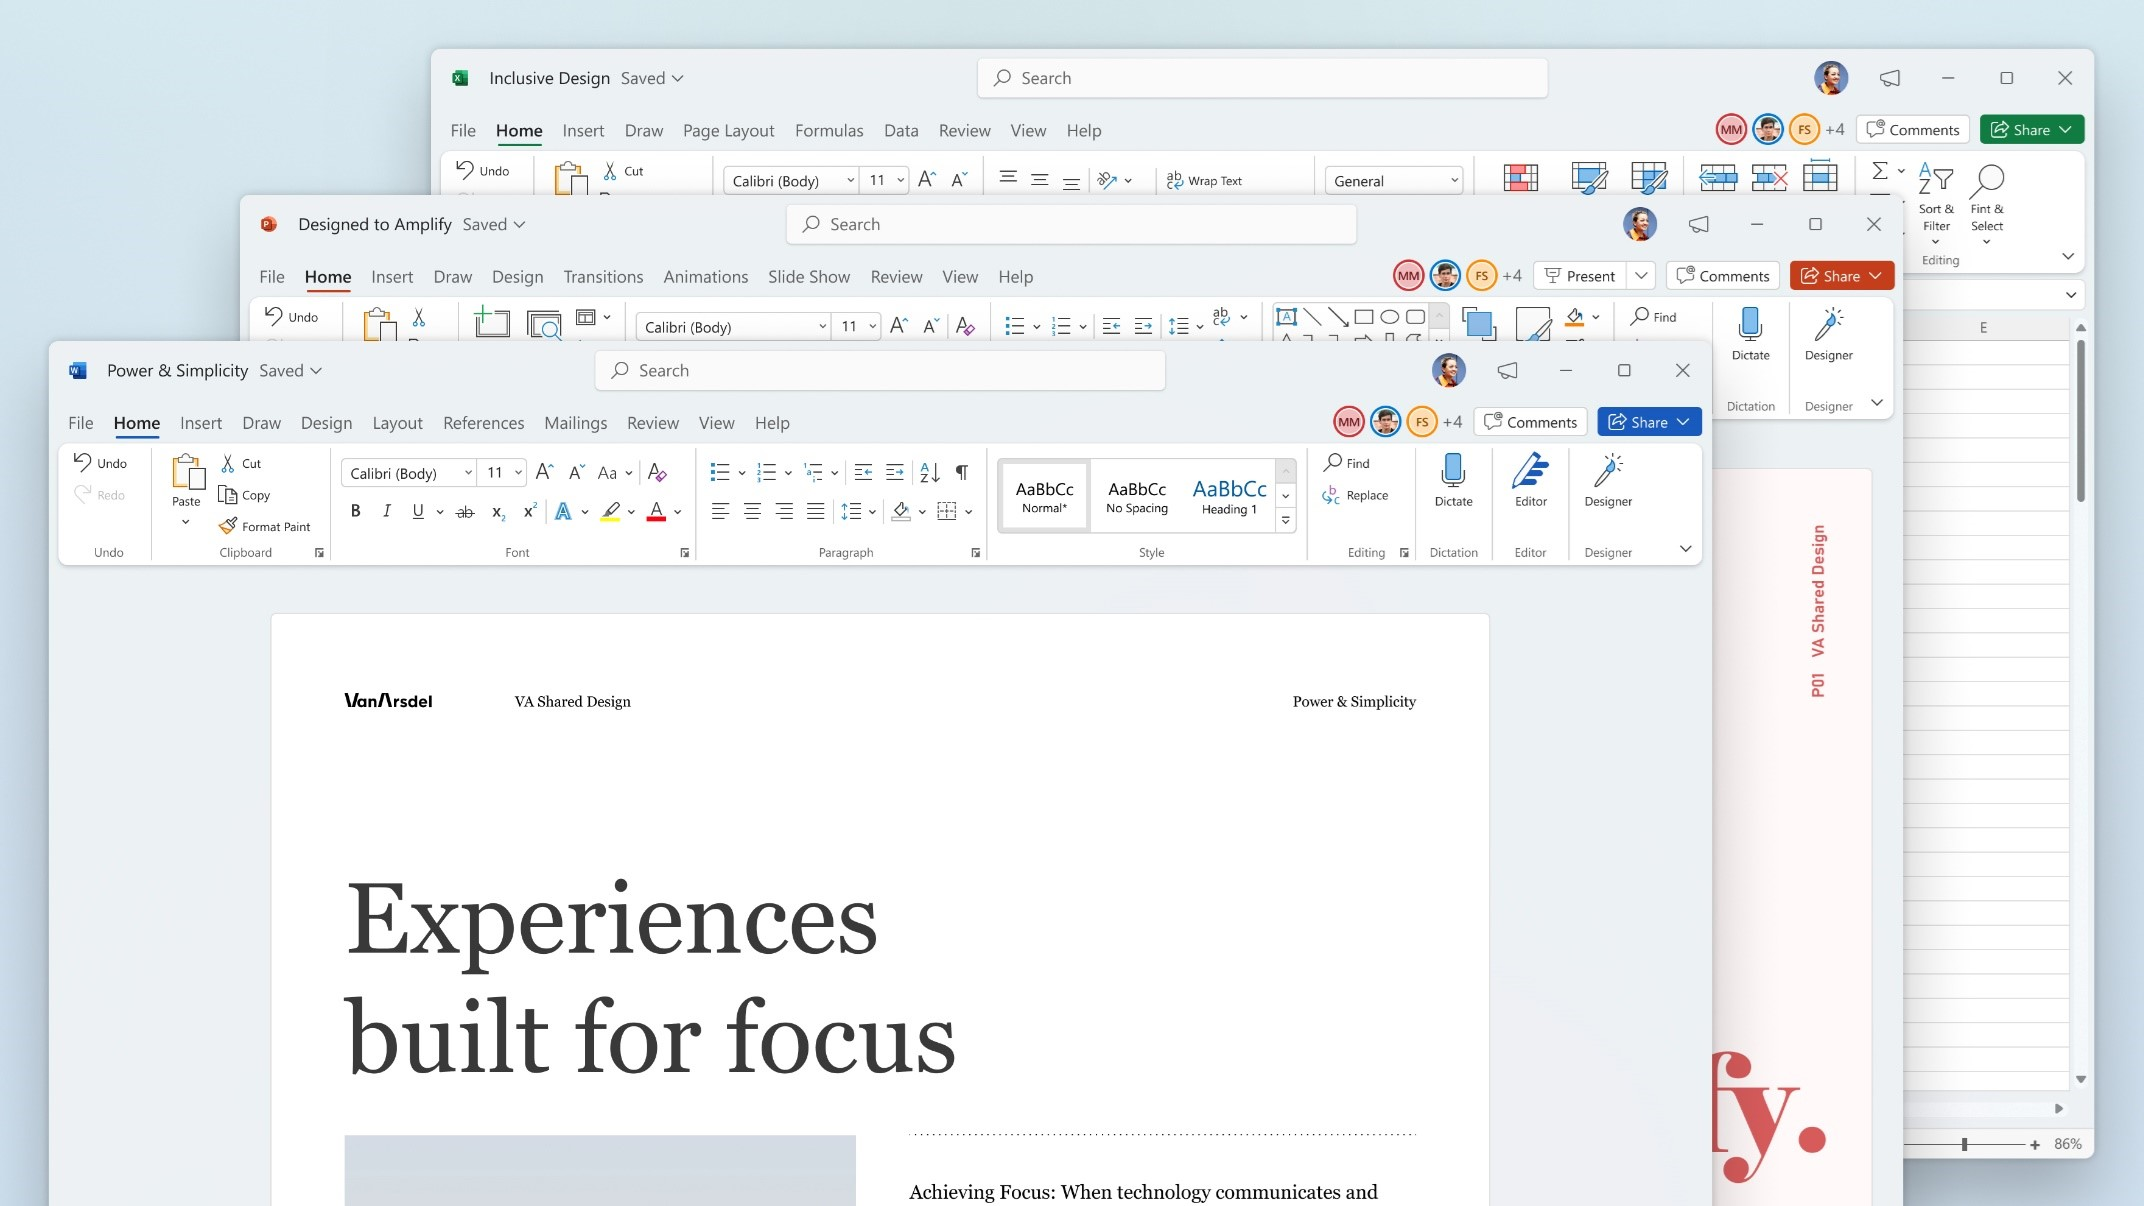 microsoft office 2021 word excel powerpoint